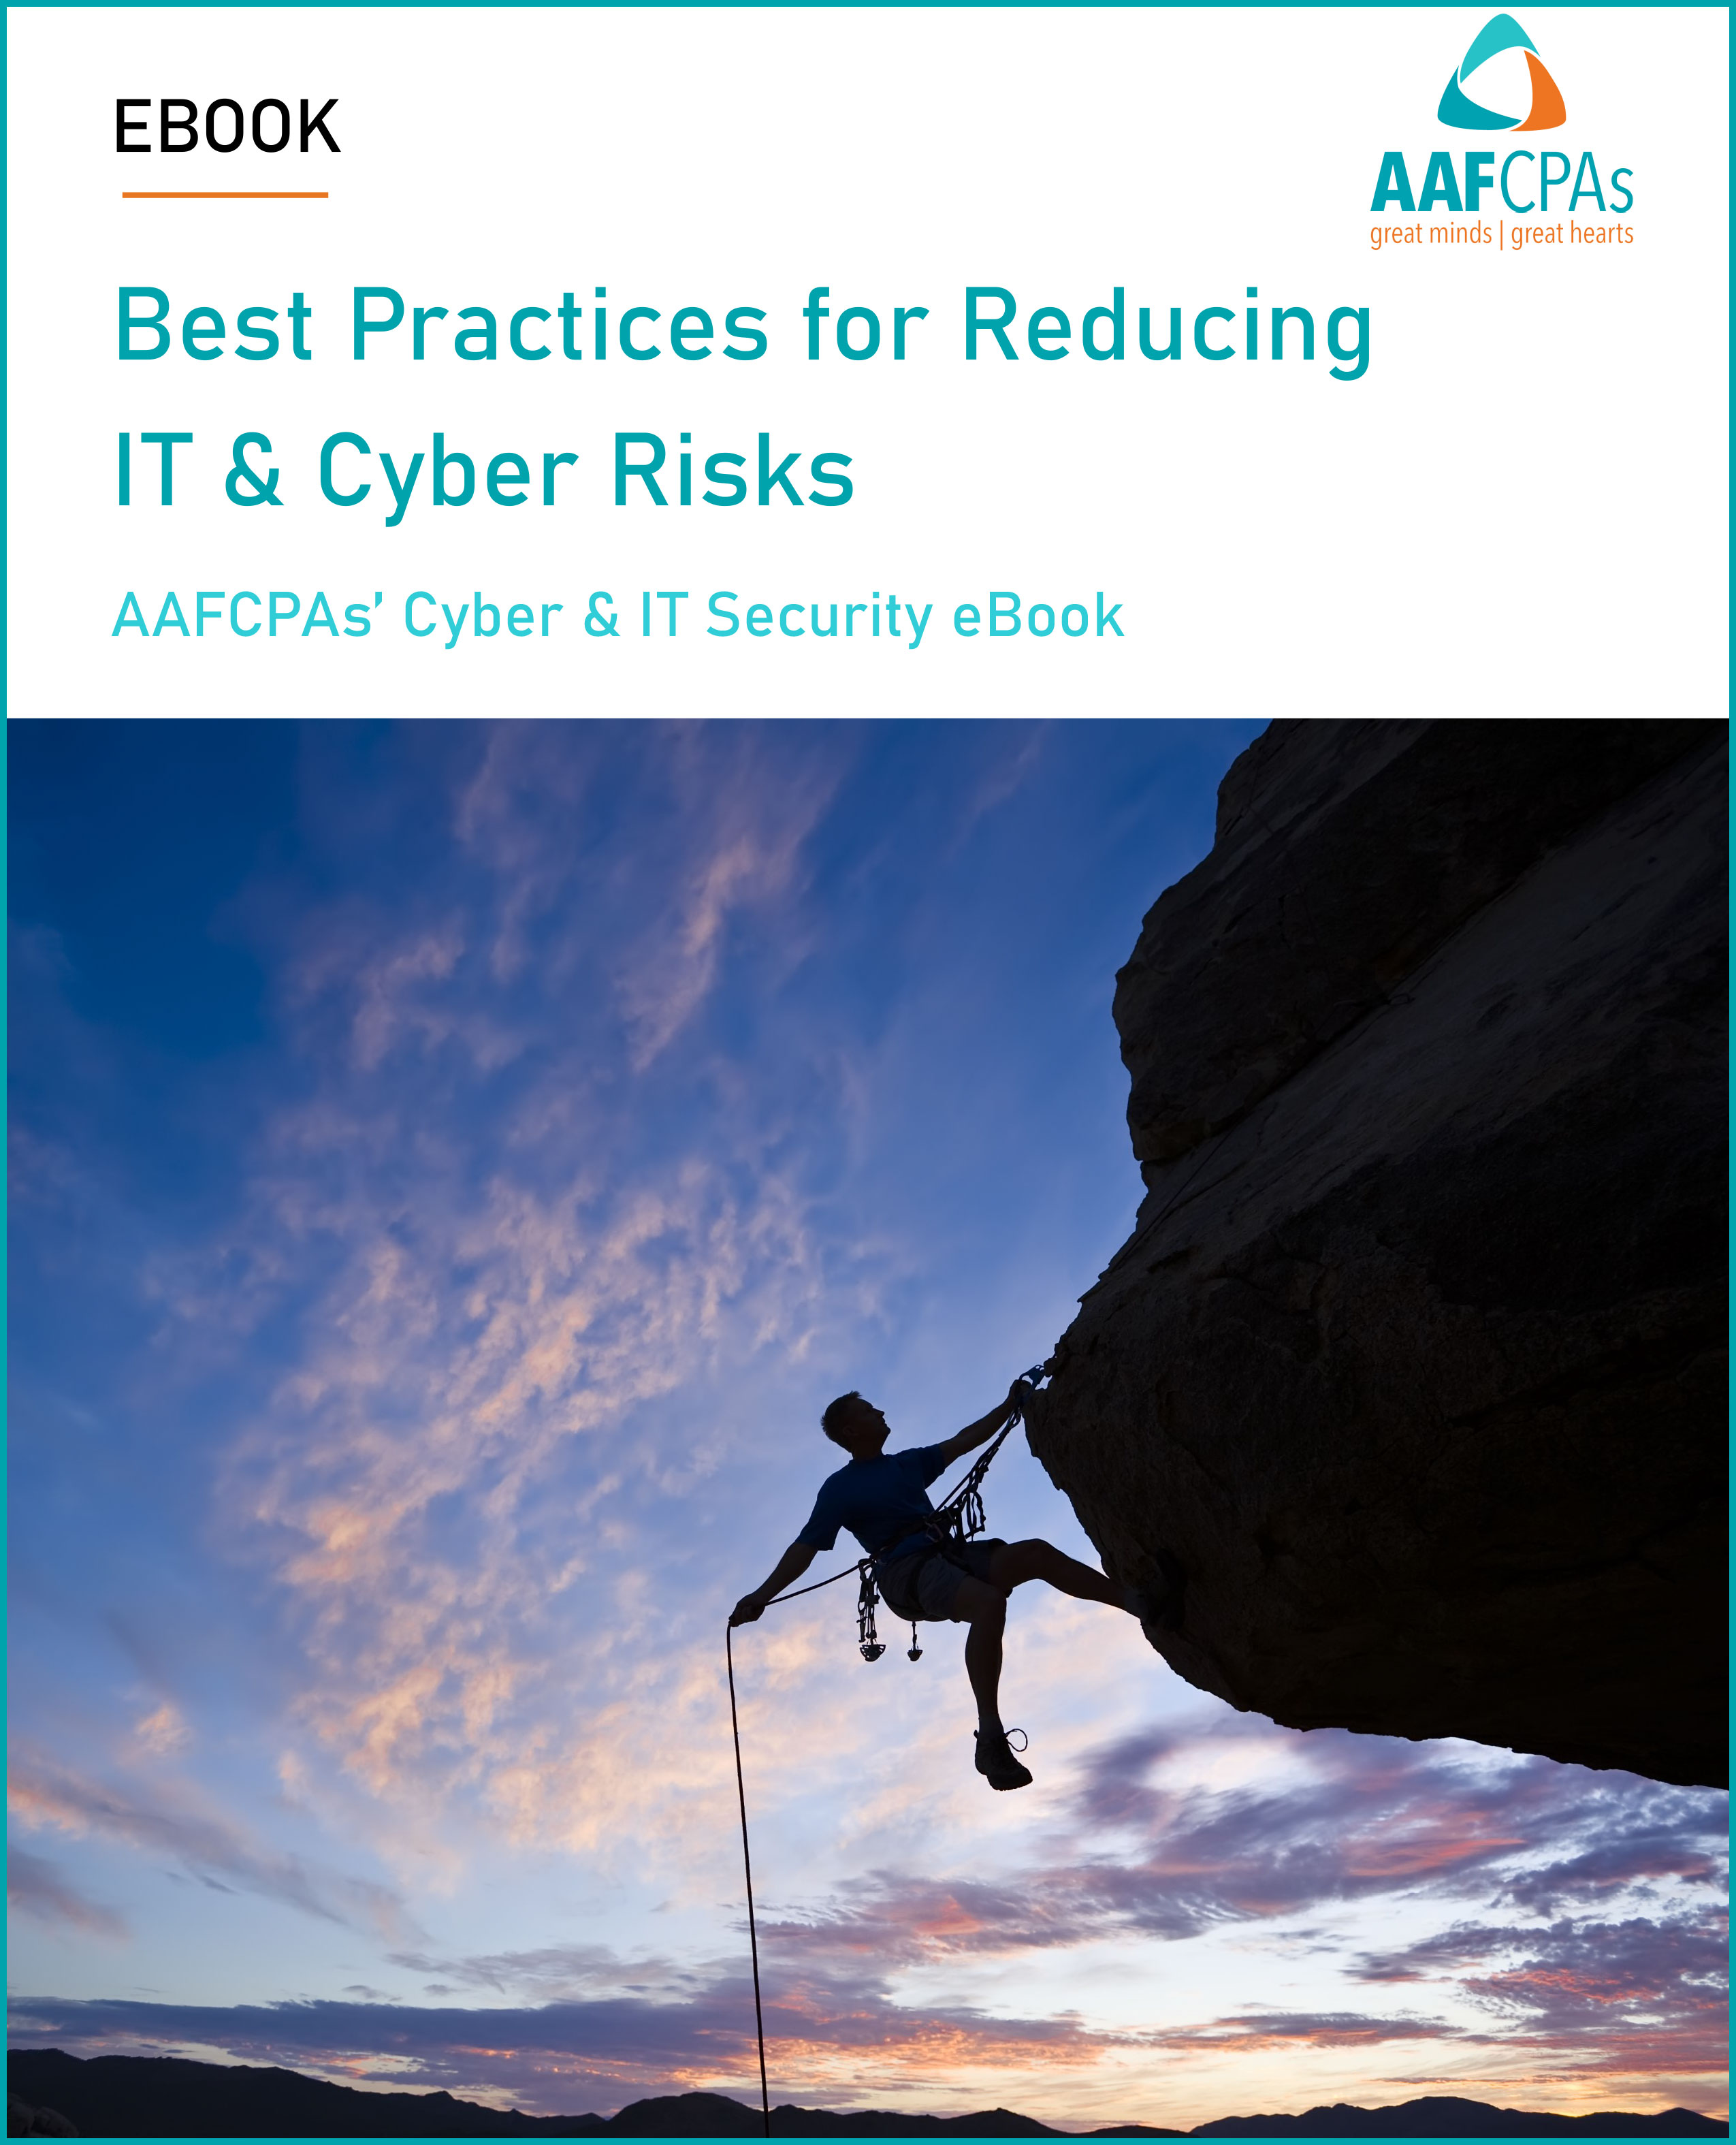 eBook: Best Practices for Reducing IT & Cyber Risks